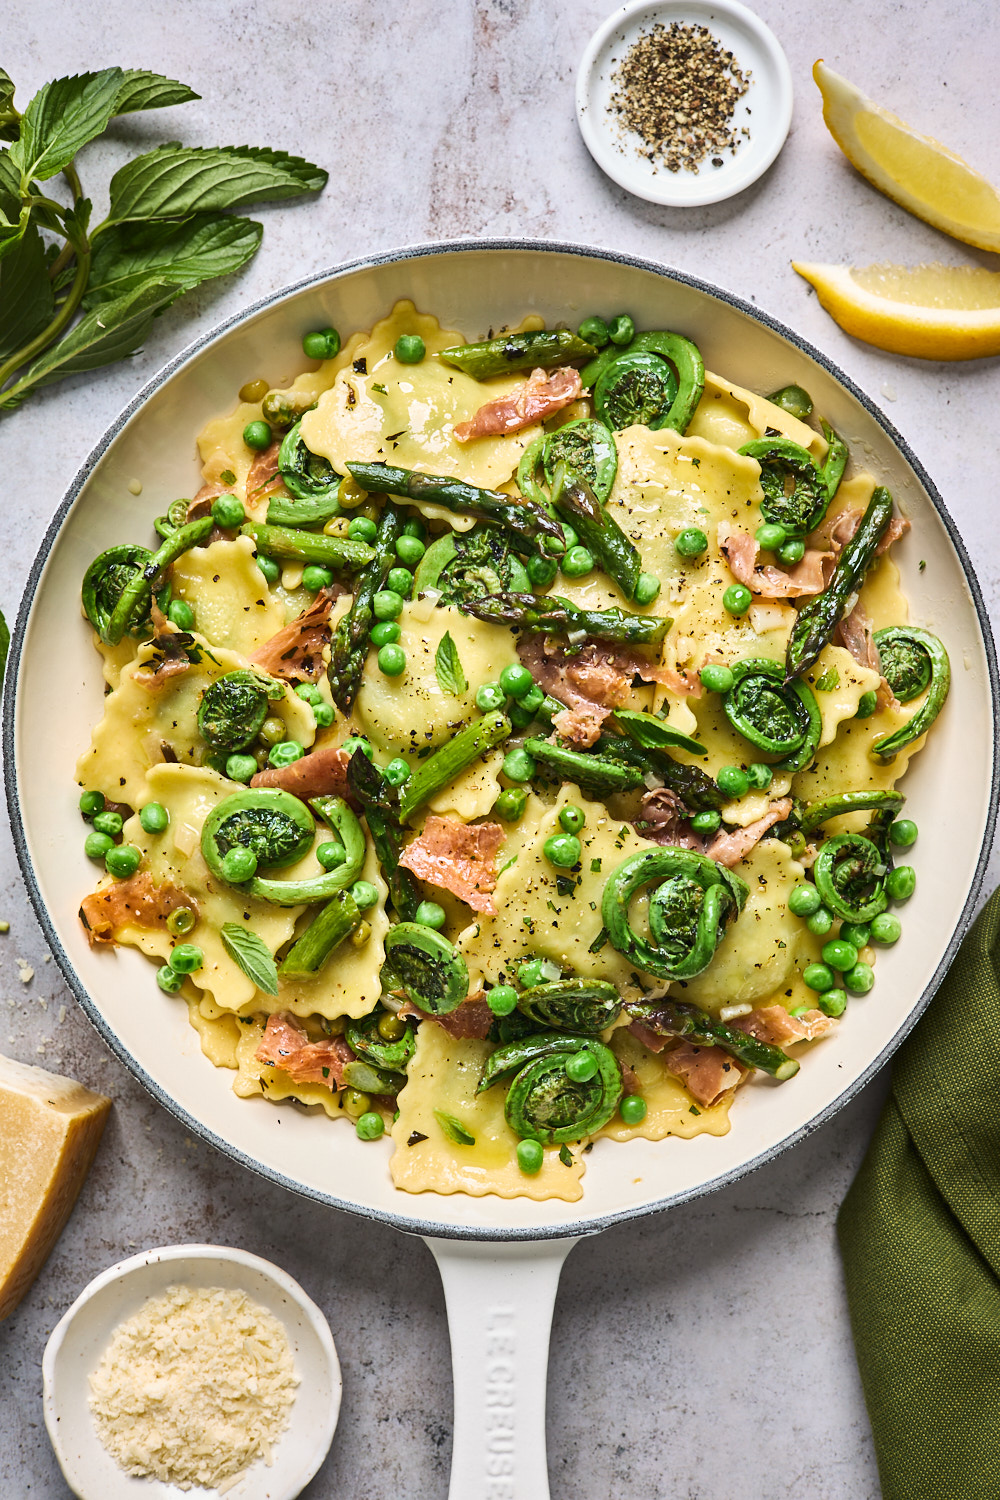 Lemon Butter Ravioli With Roasted Asparagus and Peas